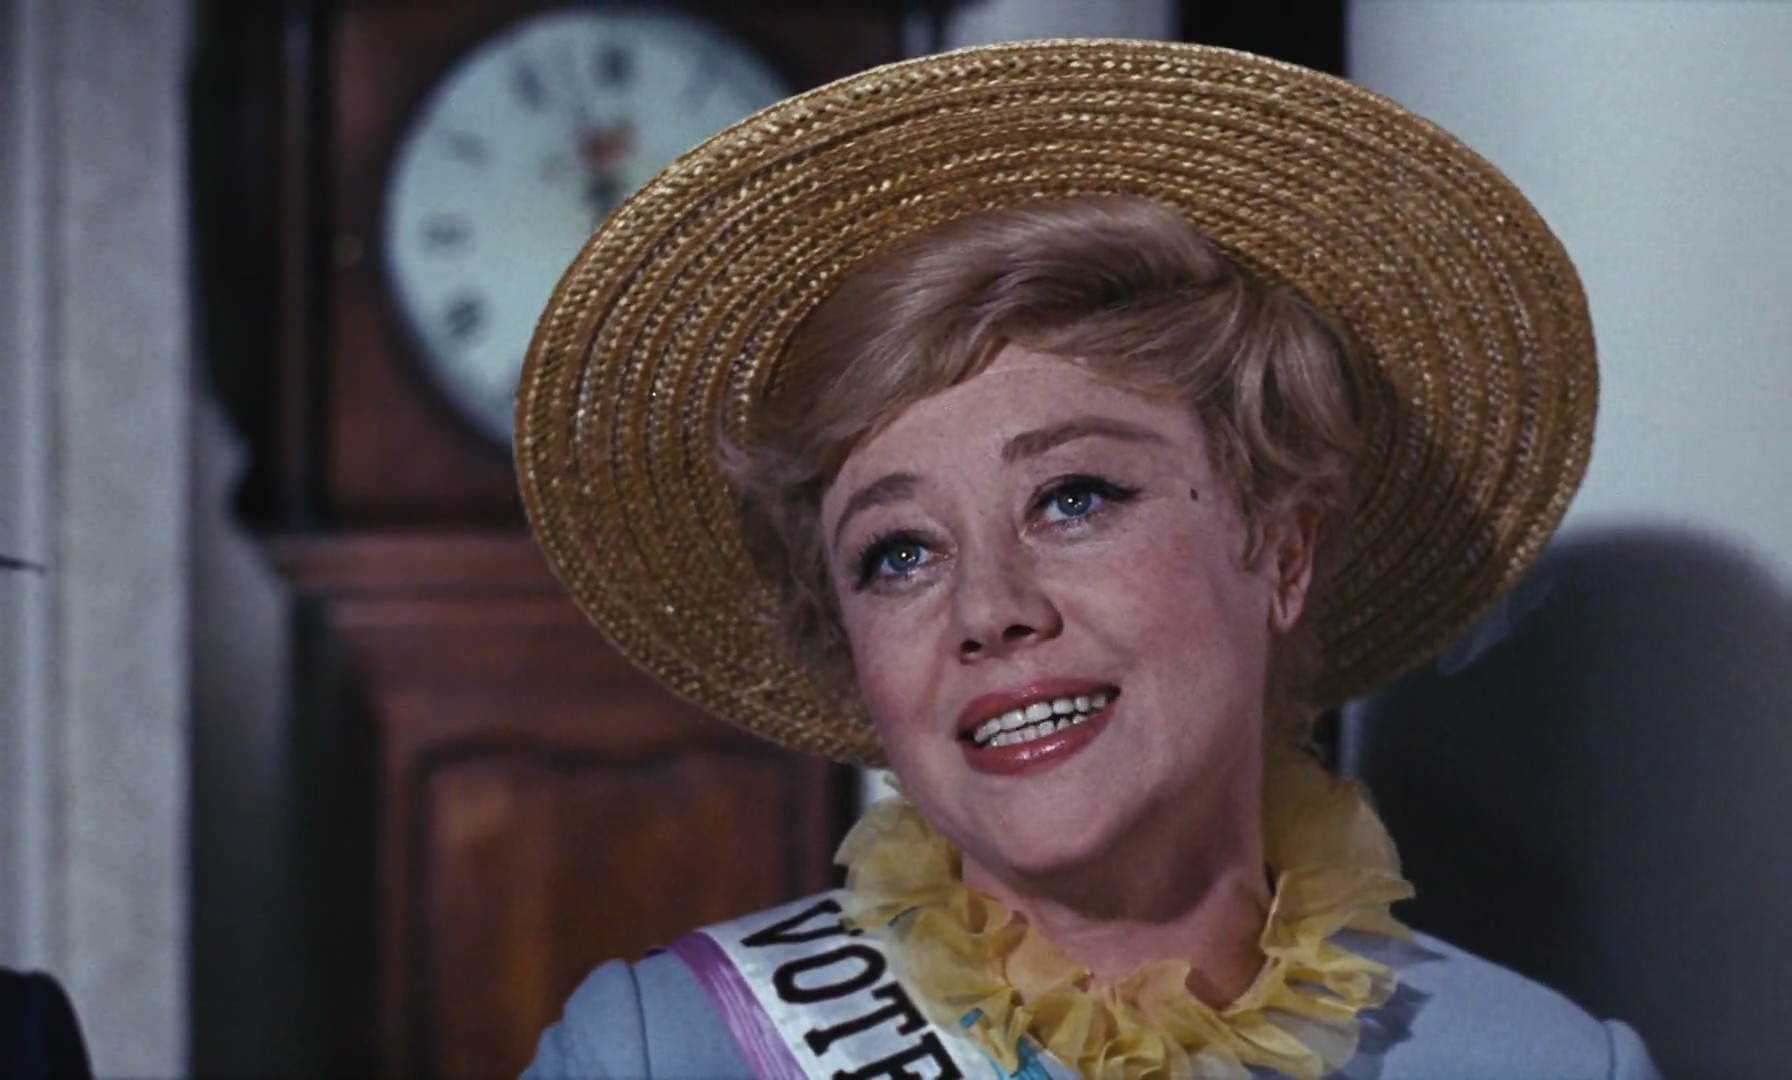 mary-poppins-disneyscreencaps.com-828